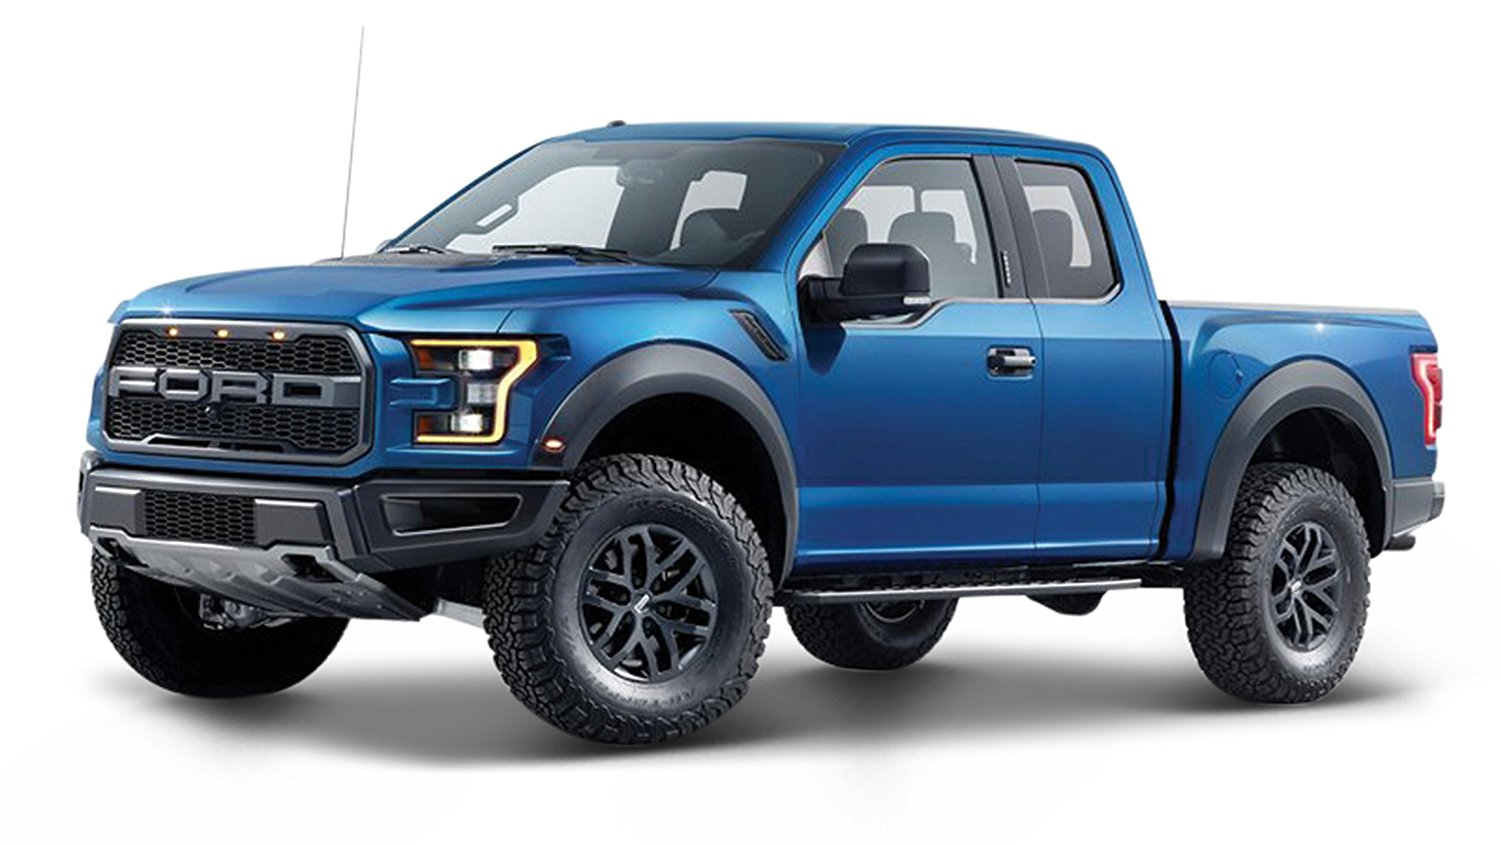 Maisto Special Edition Trucks 2017 Ford F150 Raptor Variable Color Cast Vehicle 1 24